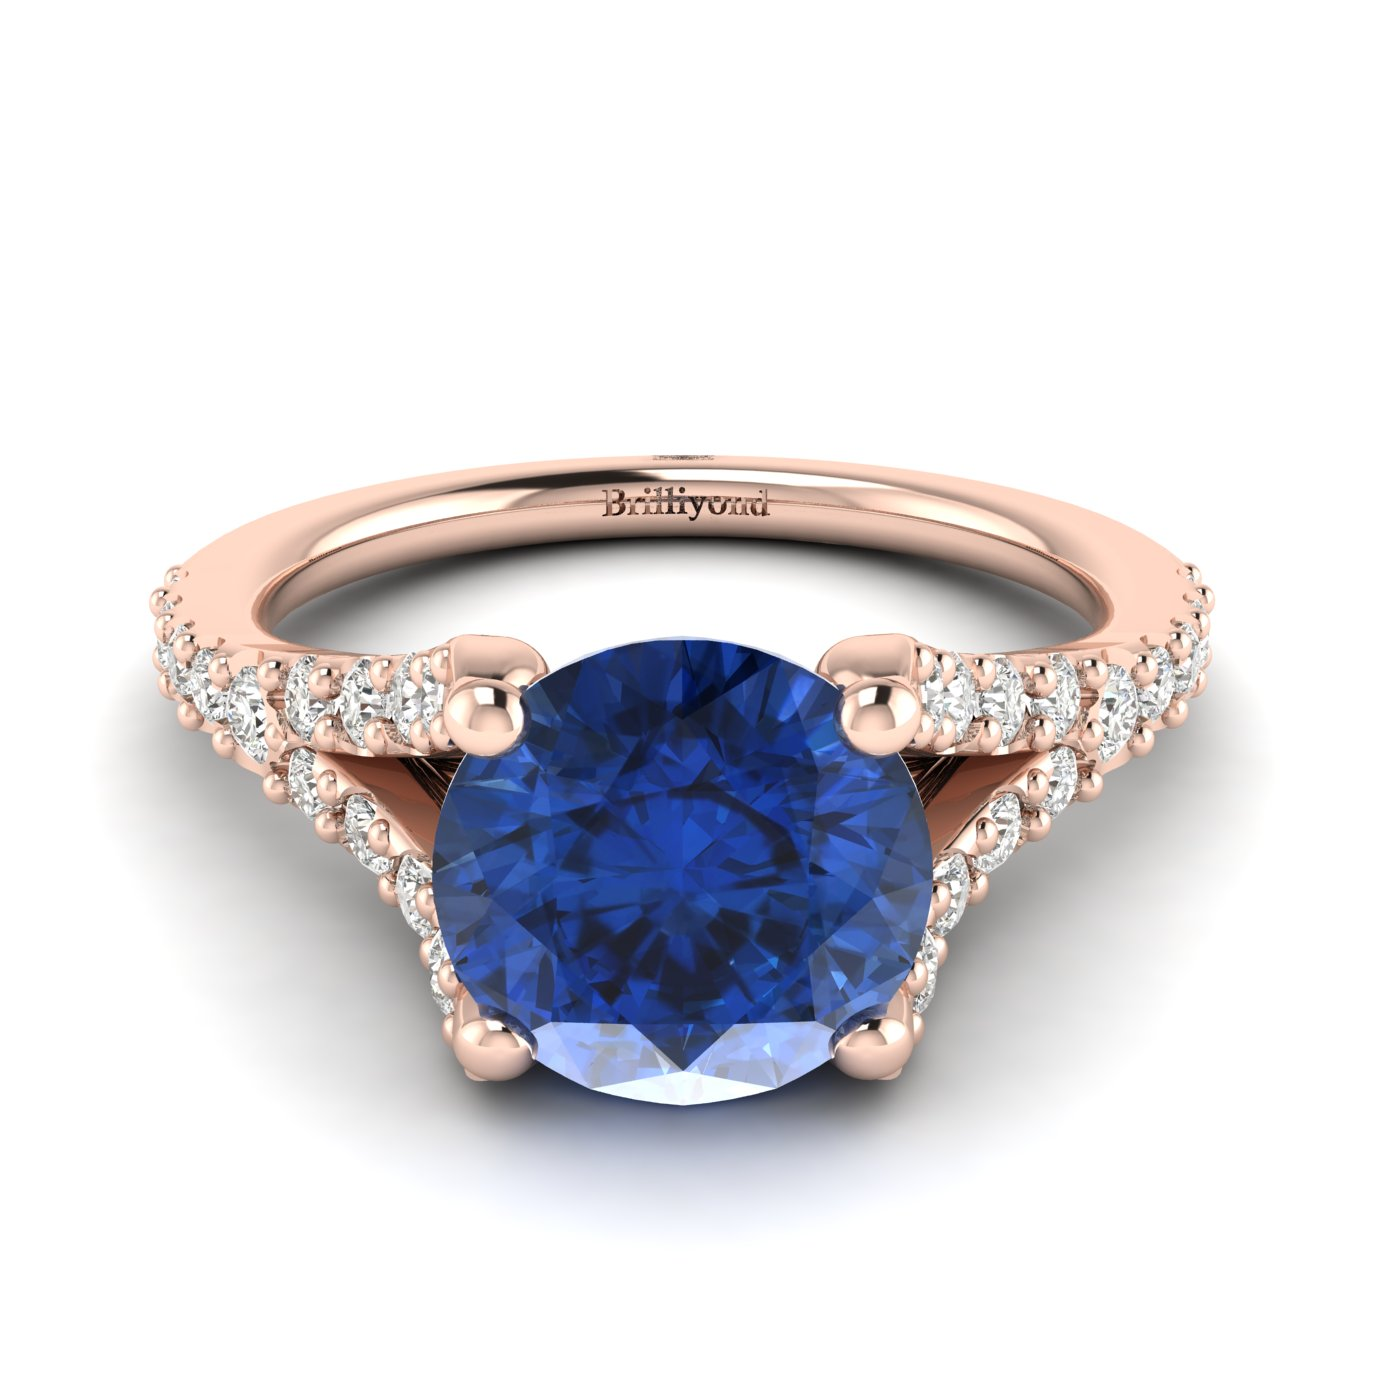 A 6mm blue Ceylon sapphire is handset over a solid 18k rose gold band with four prongs.